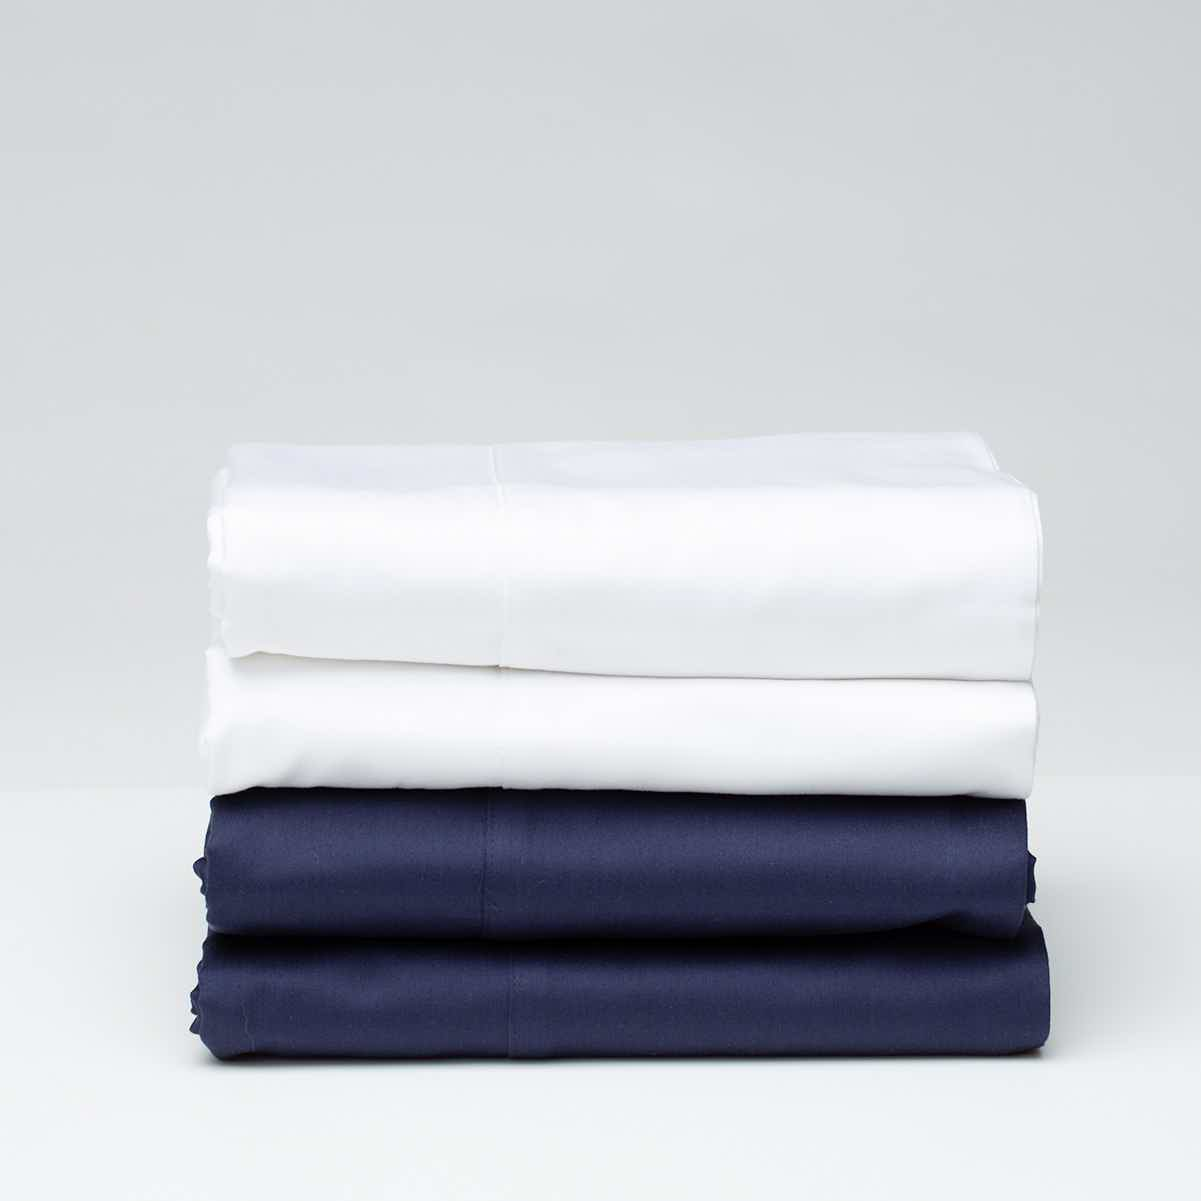 SOUND SLEEPERS SOLID COLOR COMFORTER NAVY BLUE  REVERSING TO BLUE